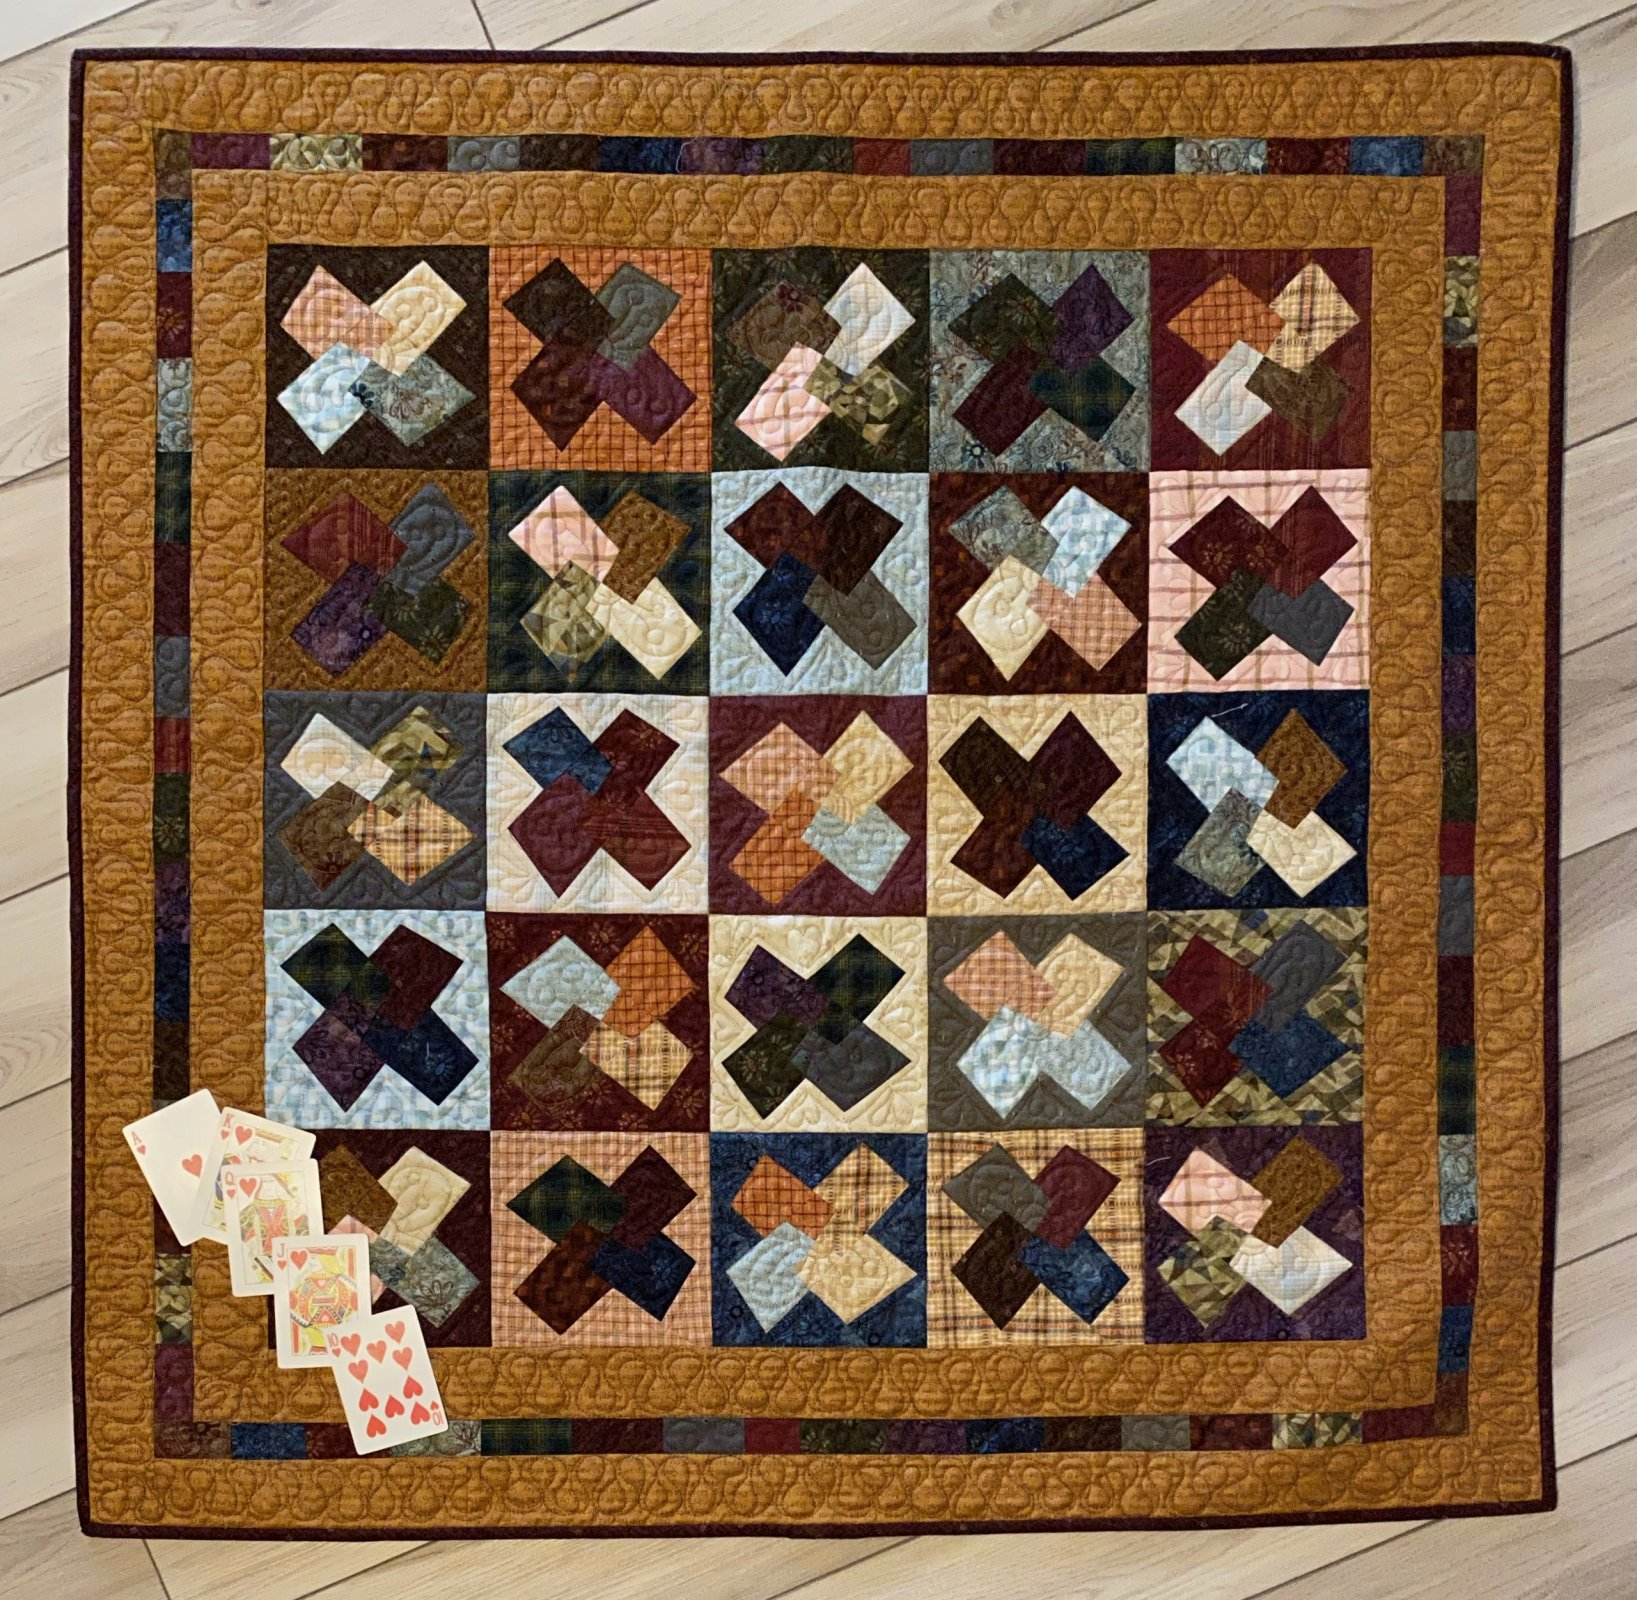 One Crazy Sister Club3 Hugs and Kisses kit with  pattern